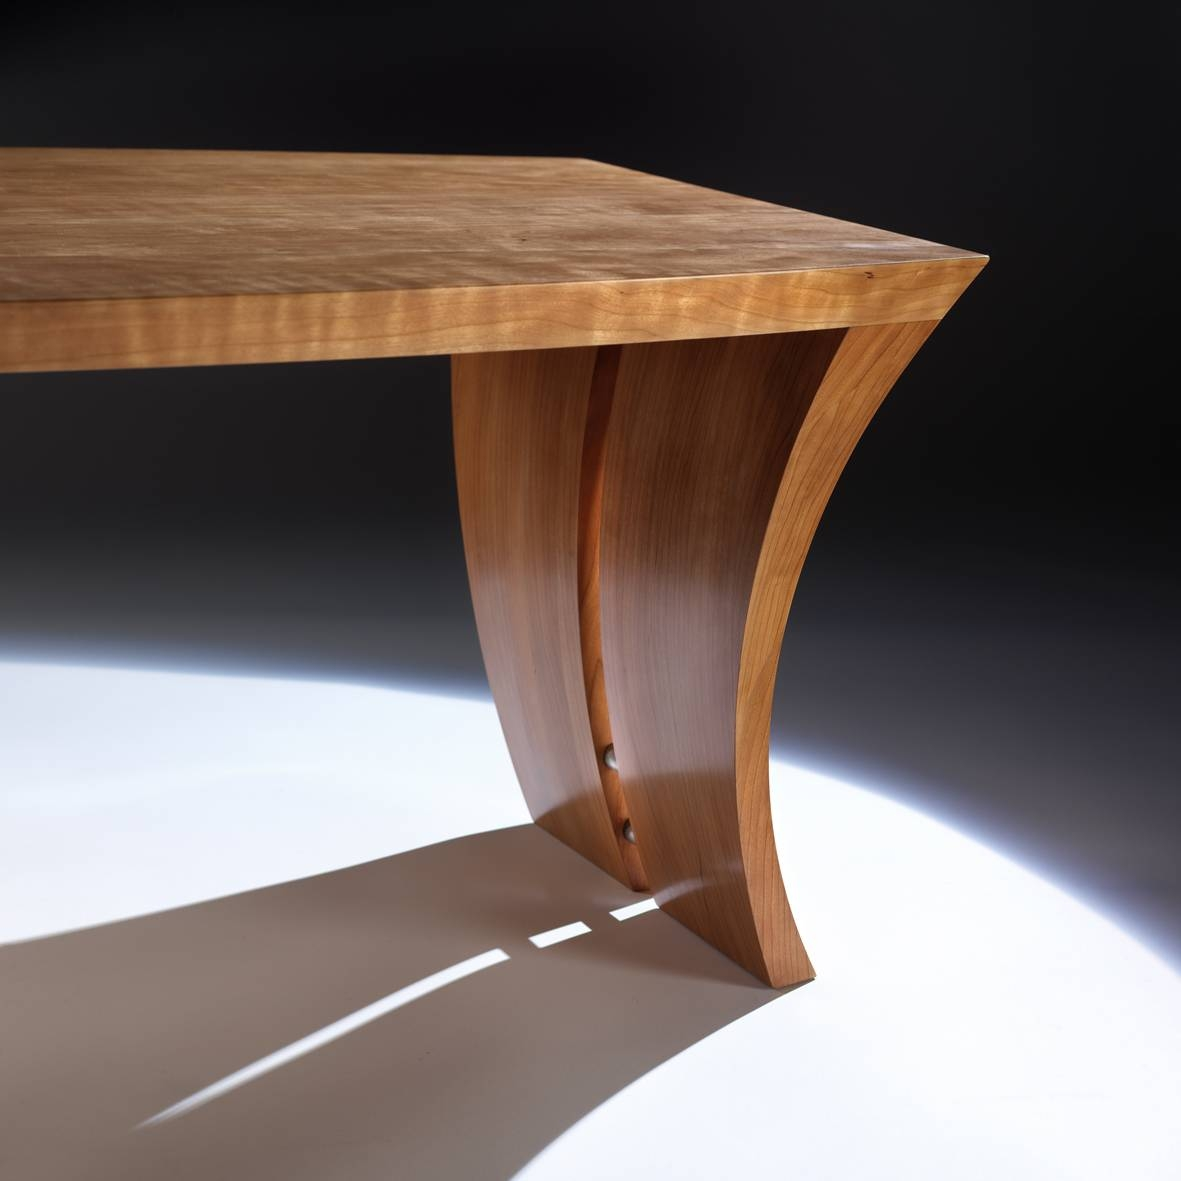 Contemporary Bespoke Coffee Table with Bespoke Coffee Tables (Image 21 of 30)